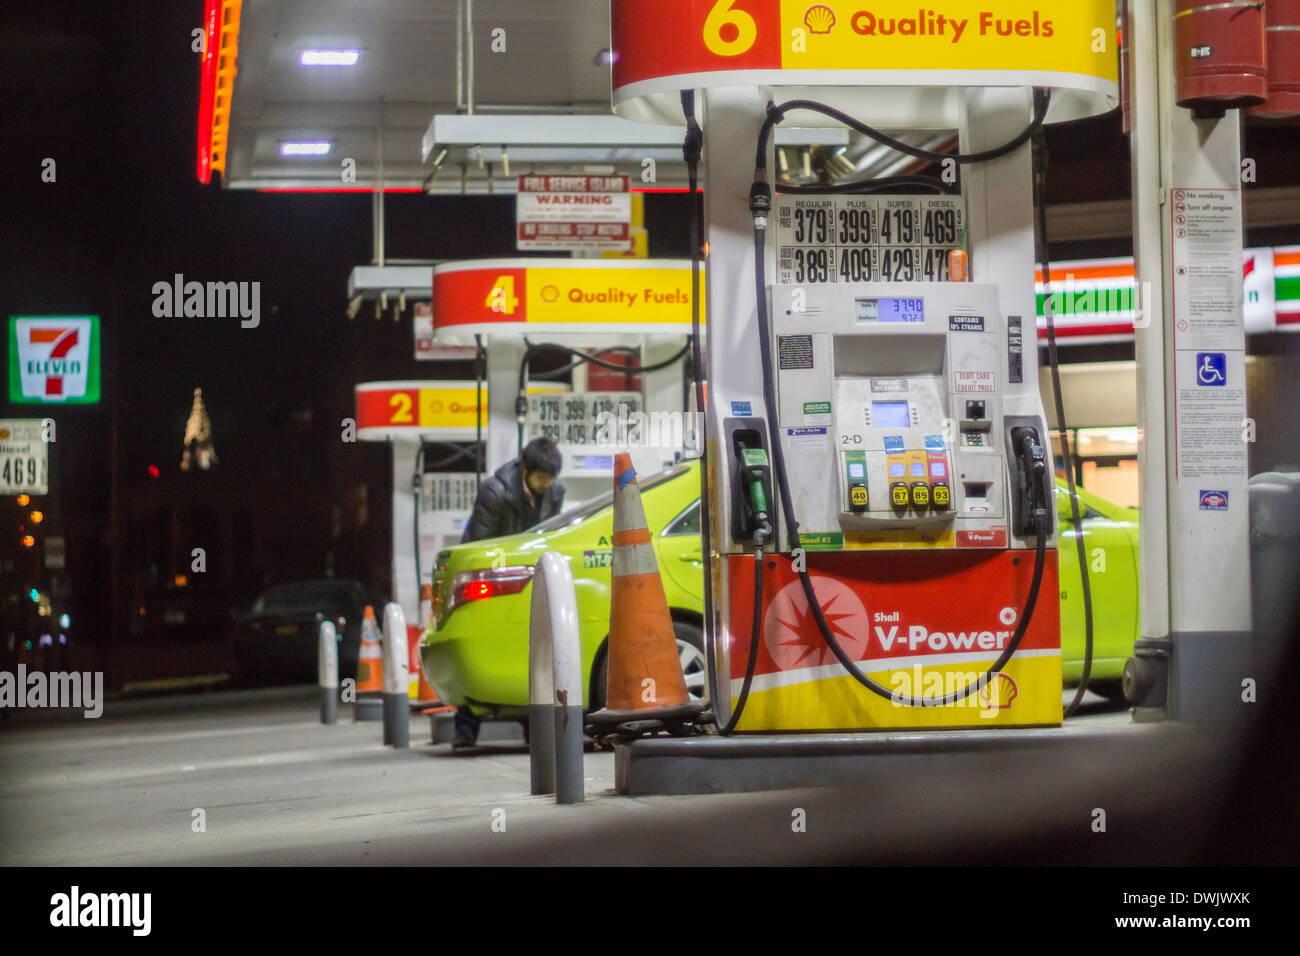 7 Eleven Gas Station Stock Photos Amp 7 Eleven Gas Station Stock Images